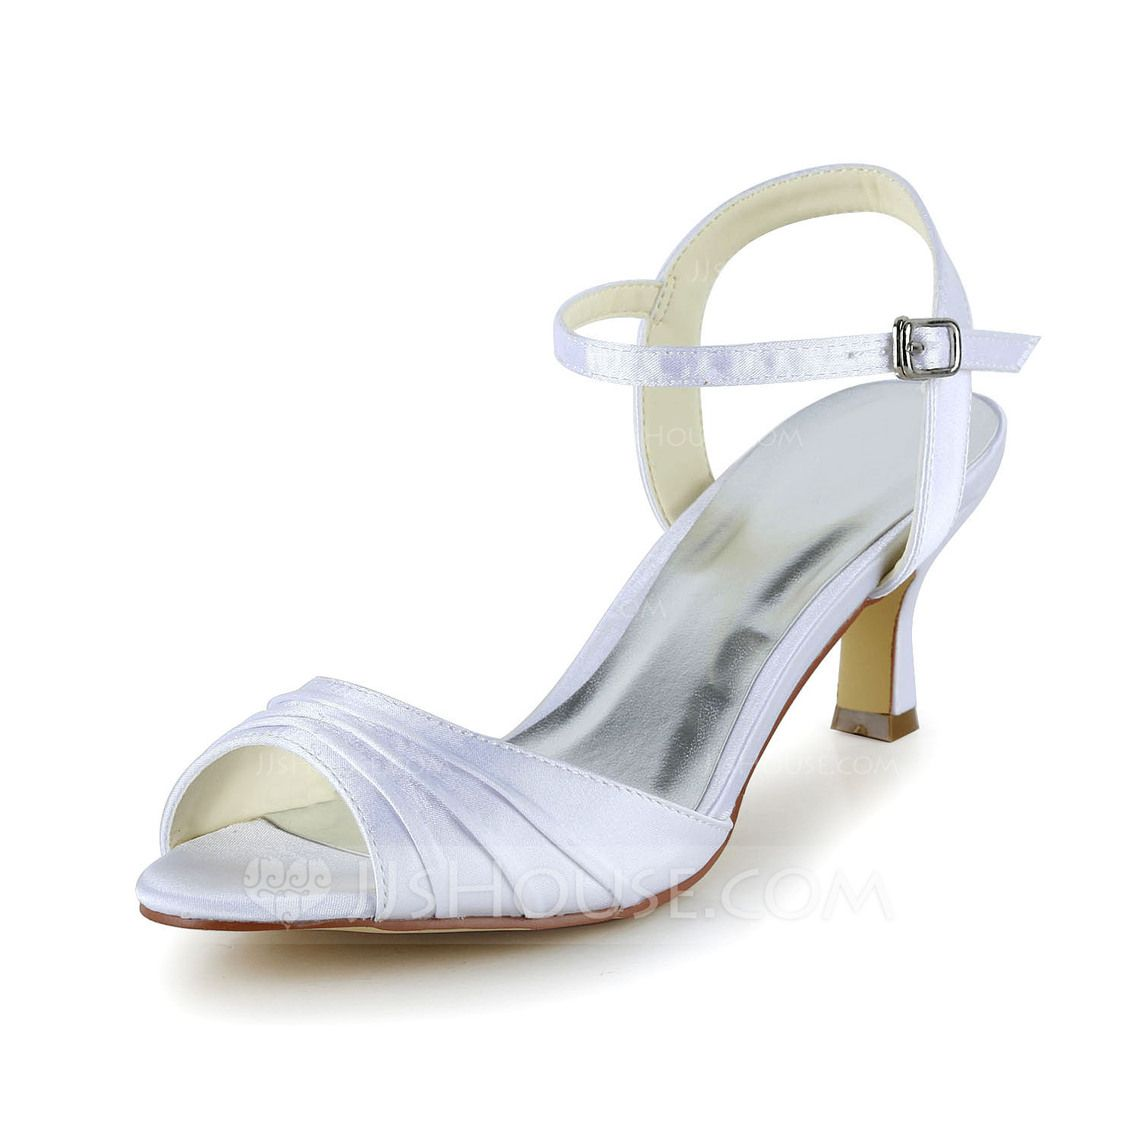 24c3e2ef799 Women s Satin Low Heel Peep Toe Sandals With Ruched (047039422 ...